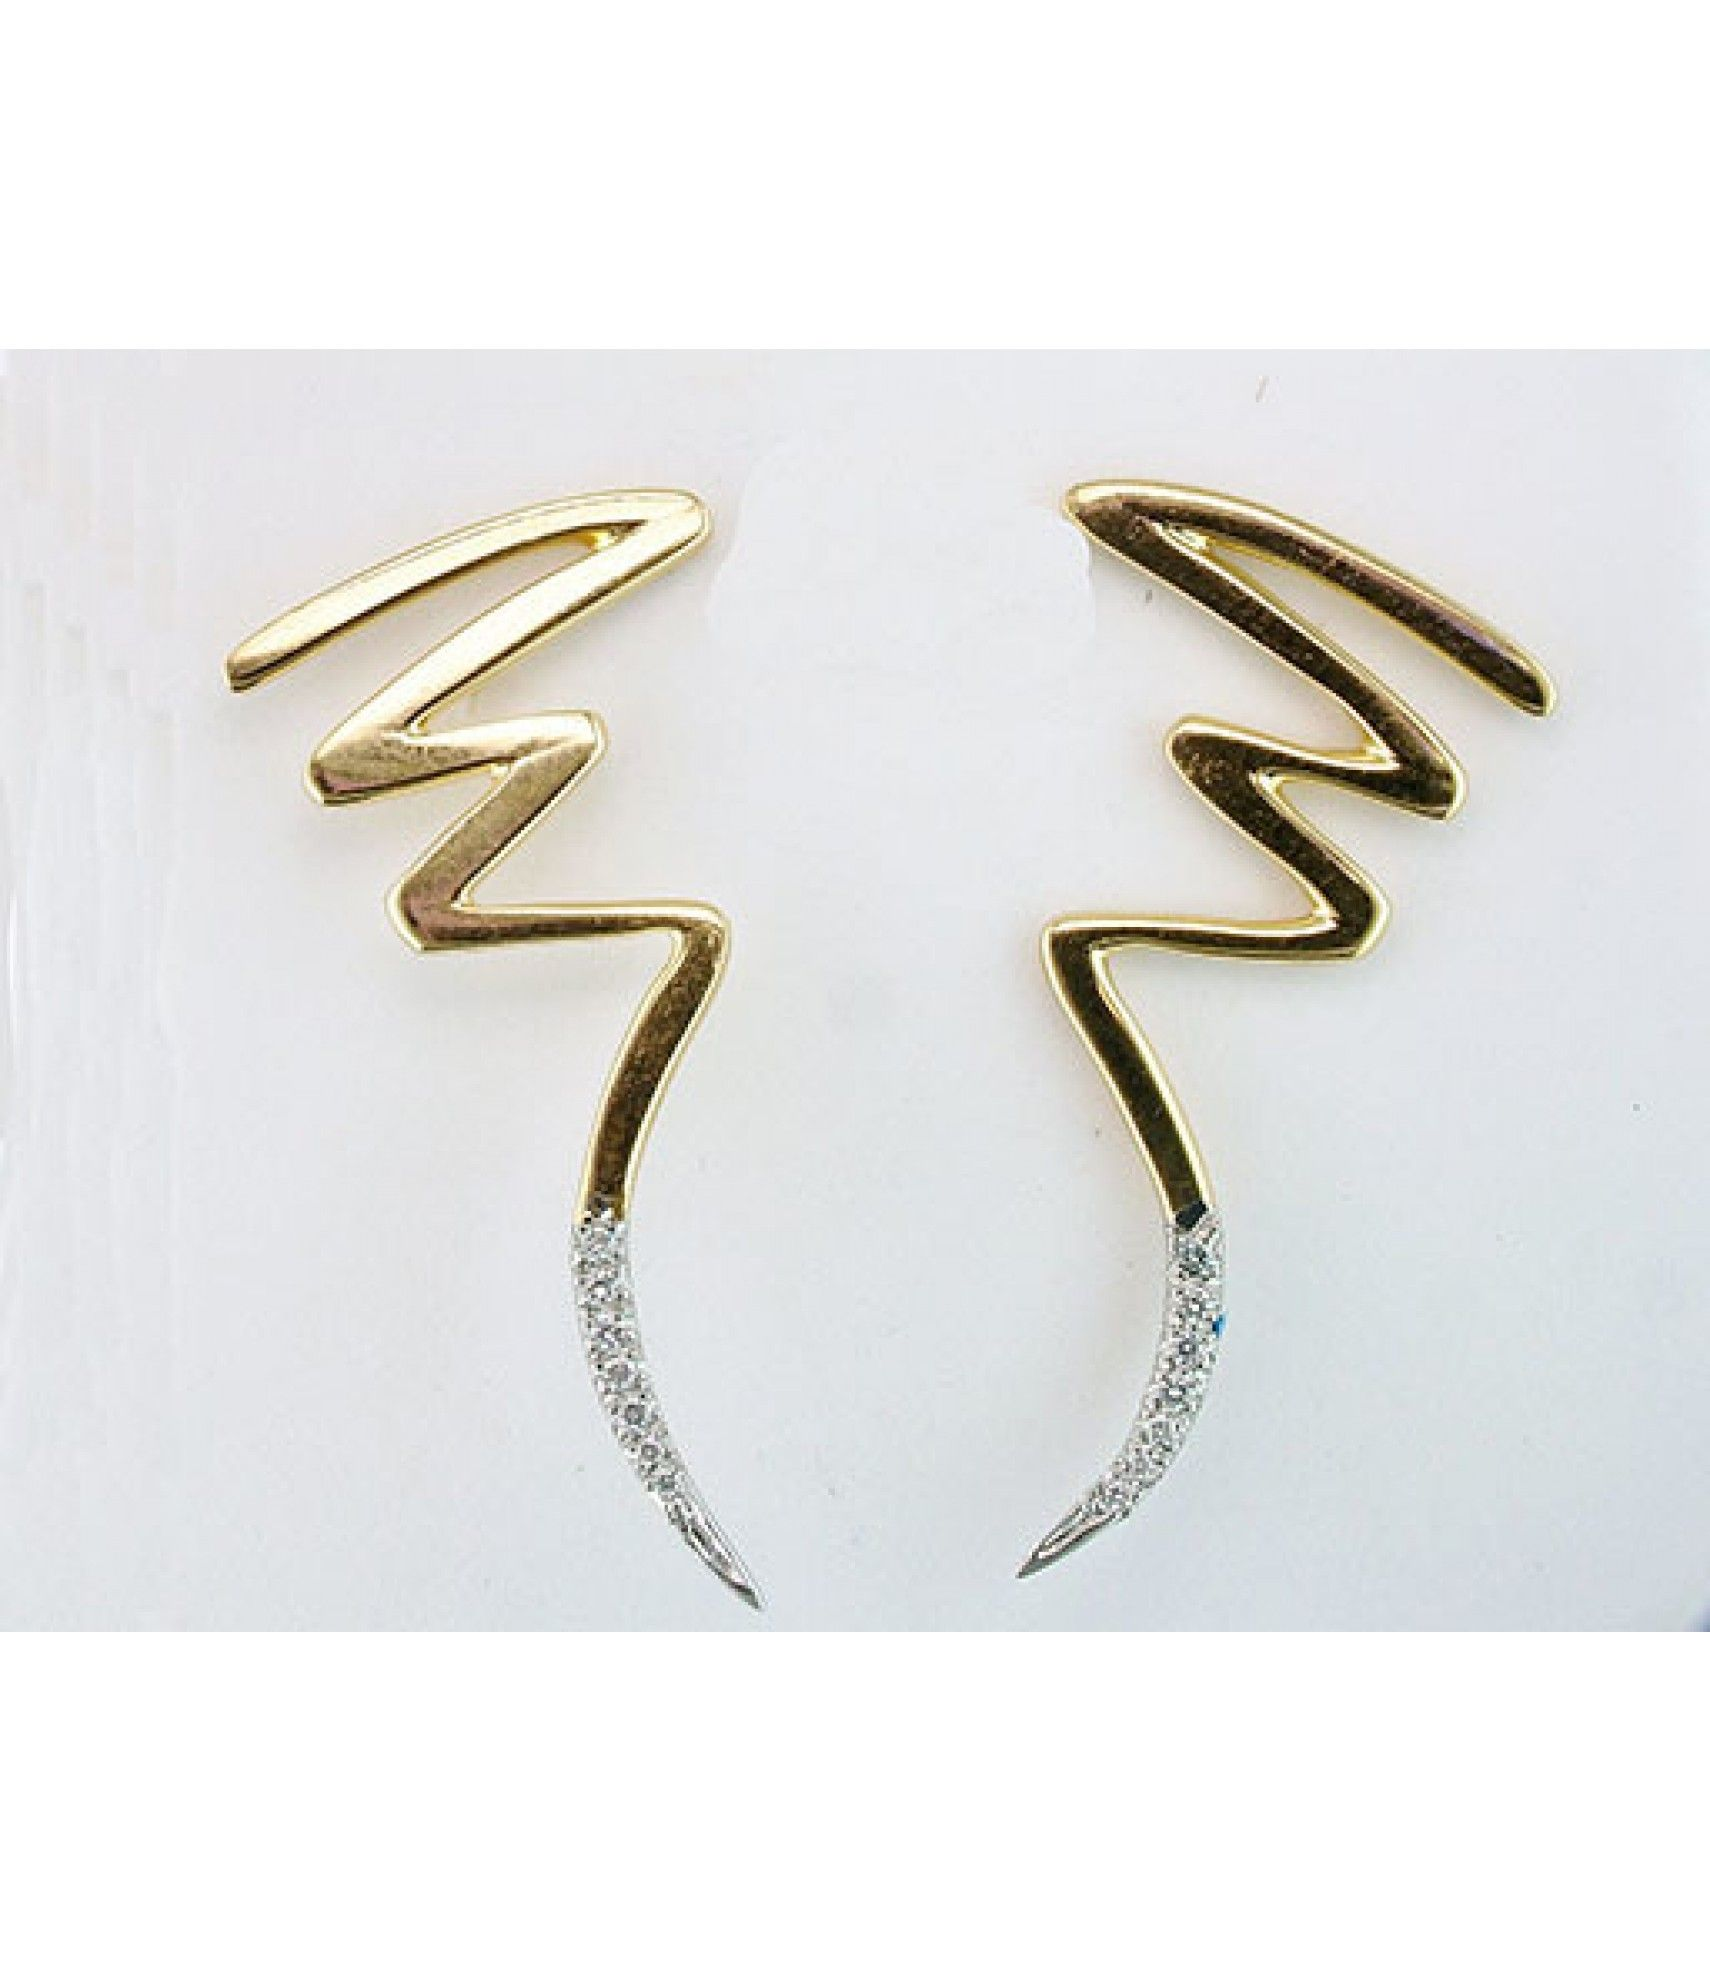 Tiffany and Co Paloma Picasso Diamond Scribble Earrings